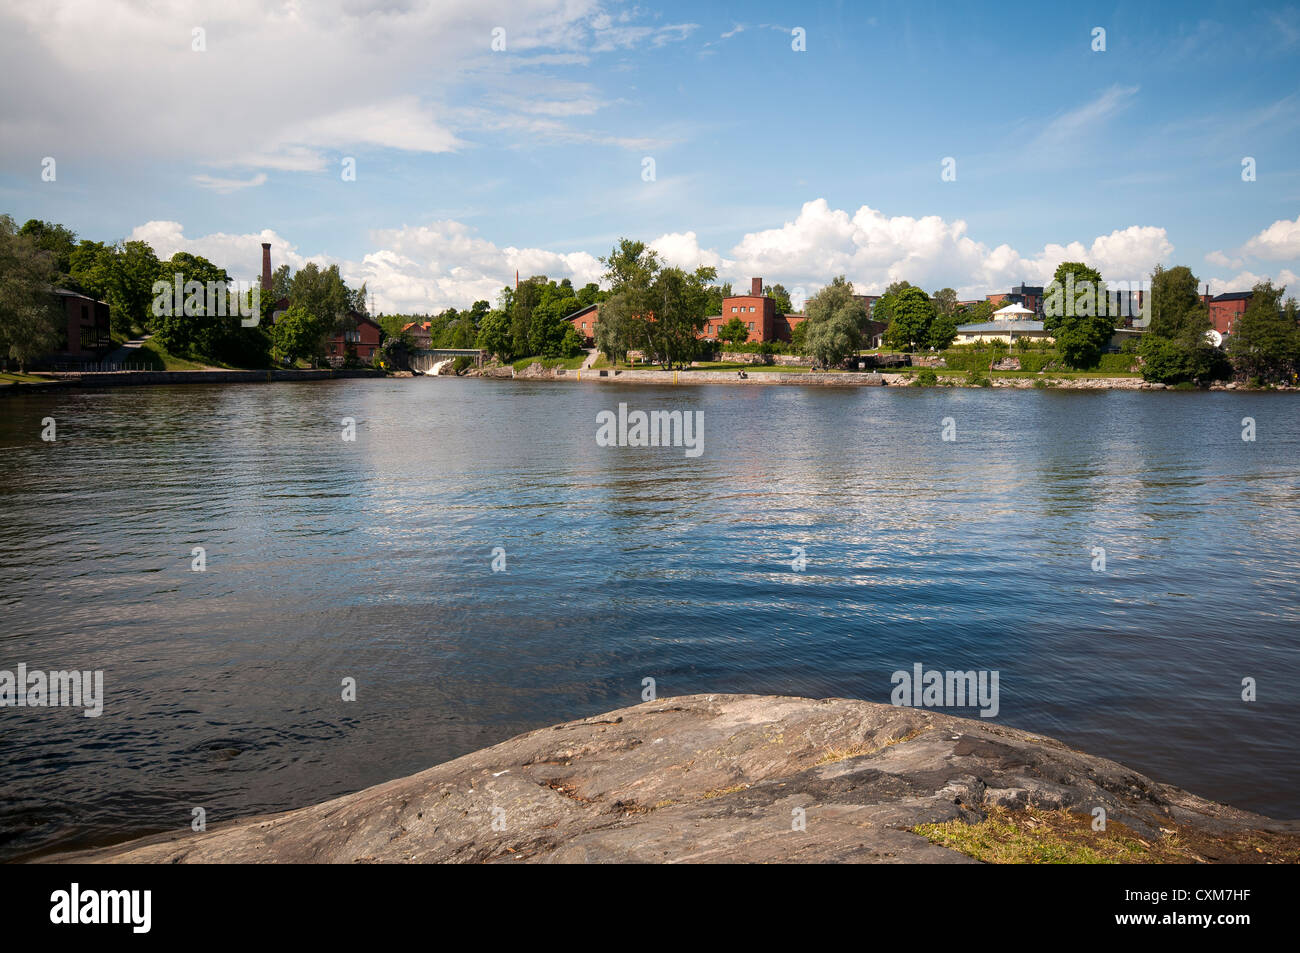 The Vantaa River in 'Old Town' part of Helsinki with the Museum of Technology on the distant shore Stock Photo